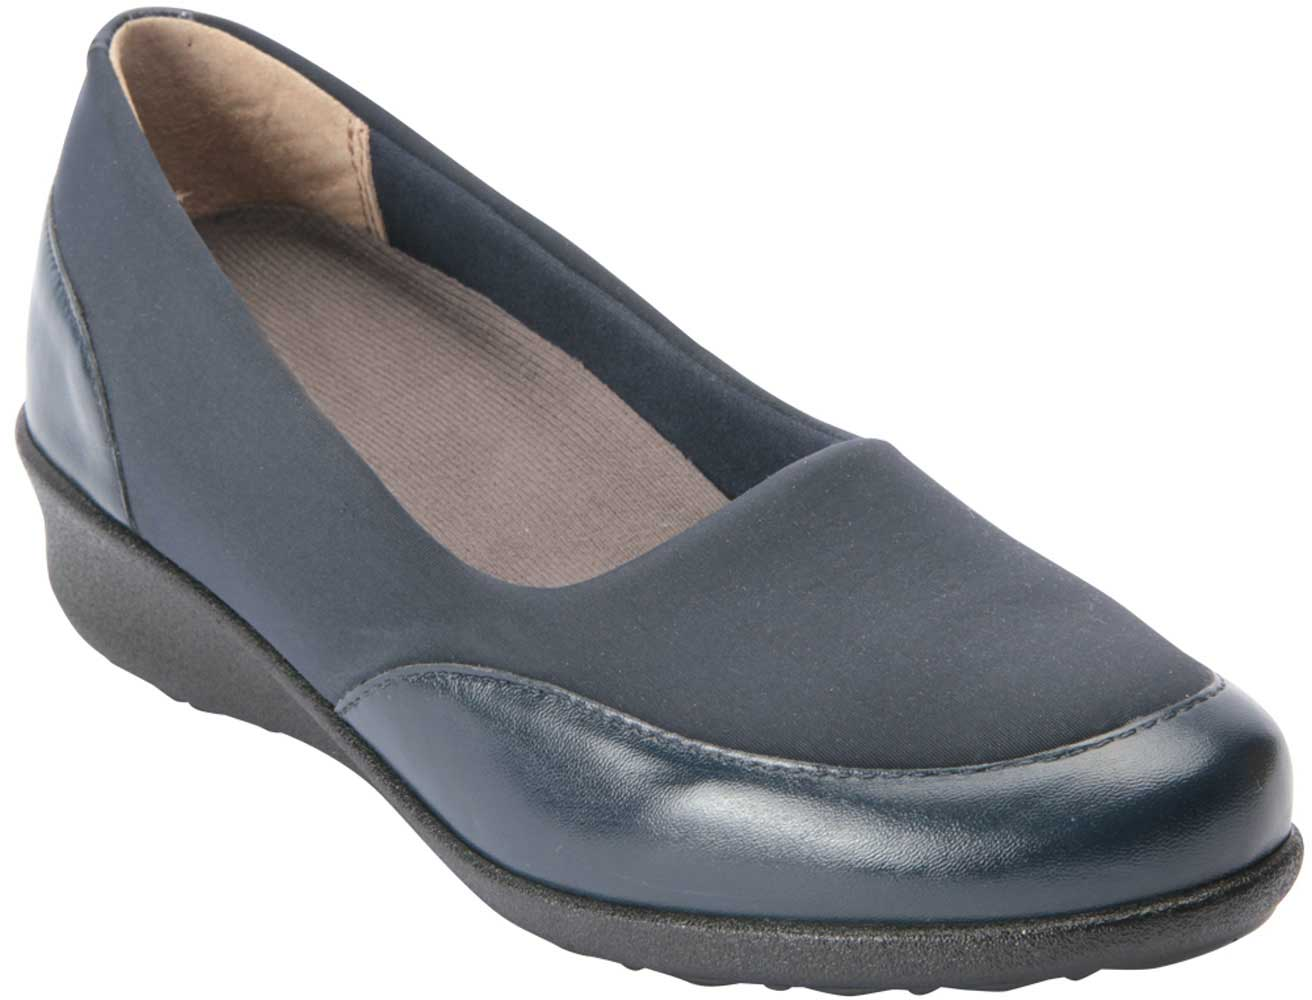 Dress Shoes With Room Insoles